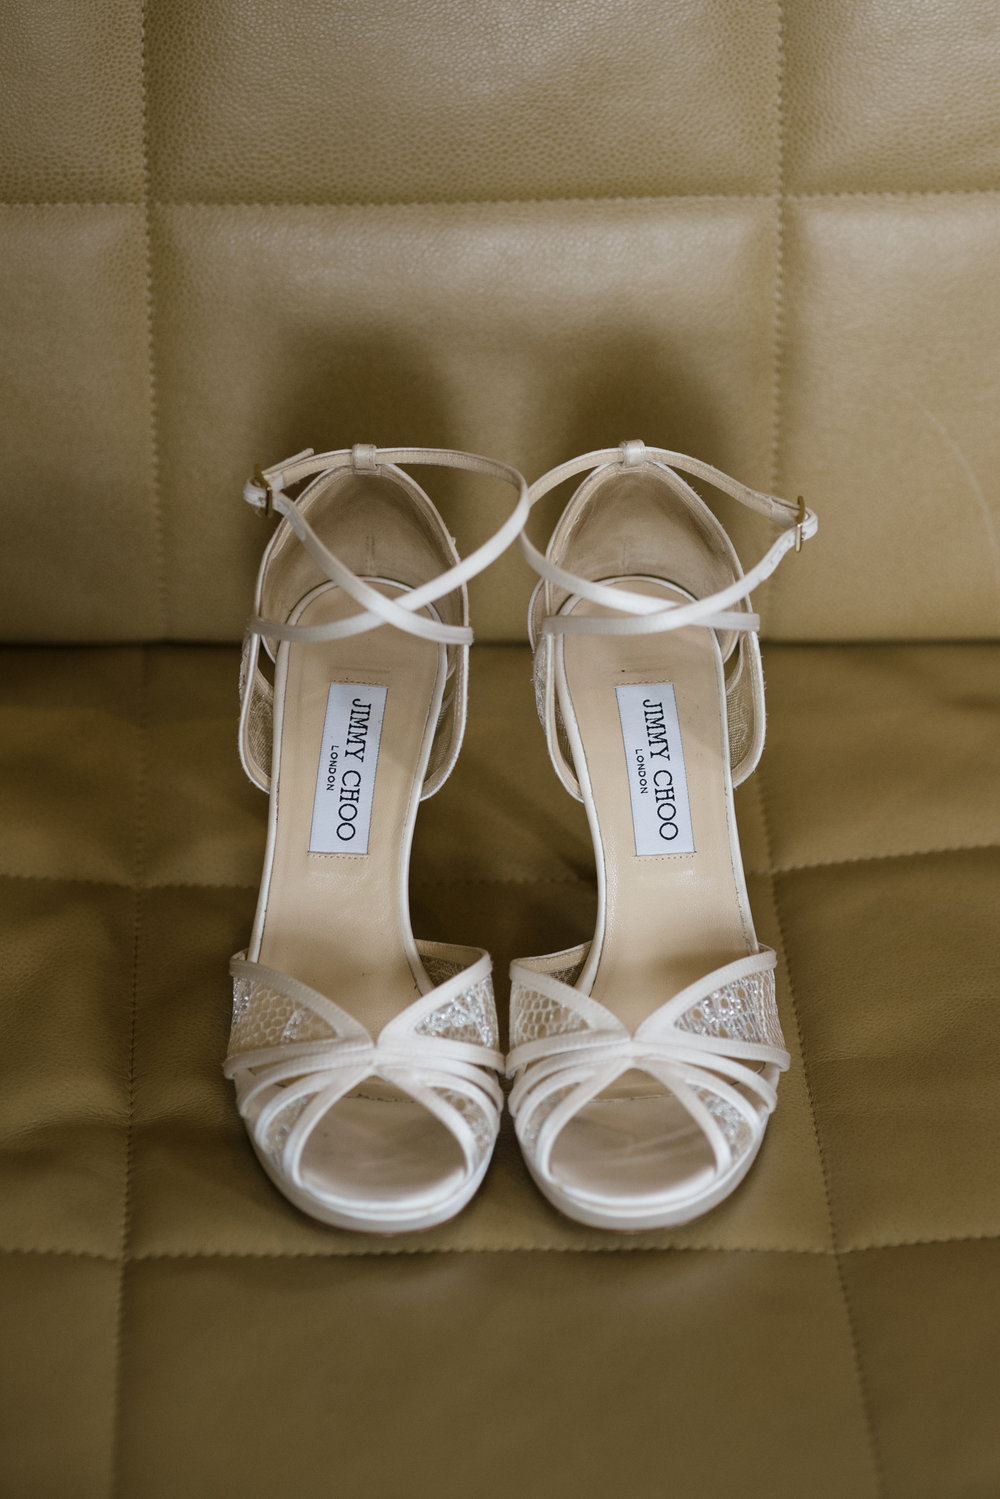 Shoe Details - Dallas, Tx - Spring Wedding - Julian Leaver Events